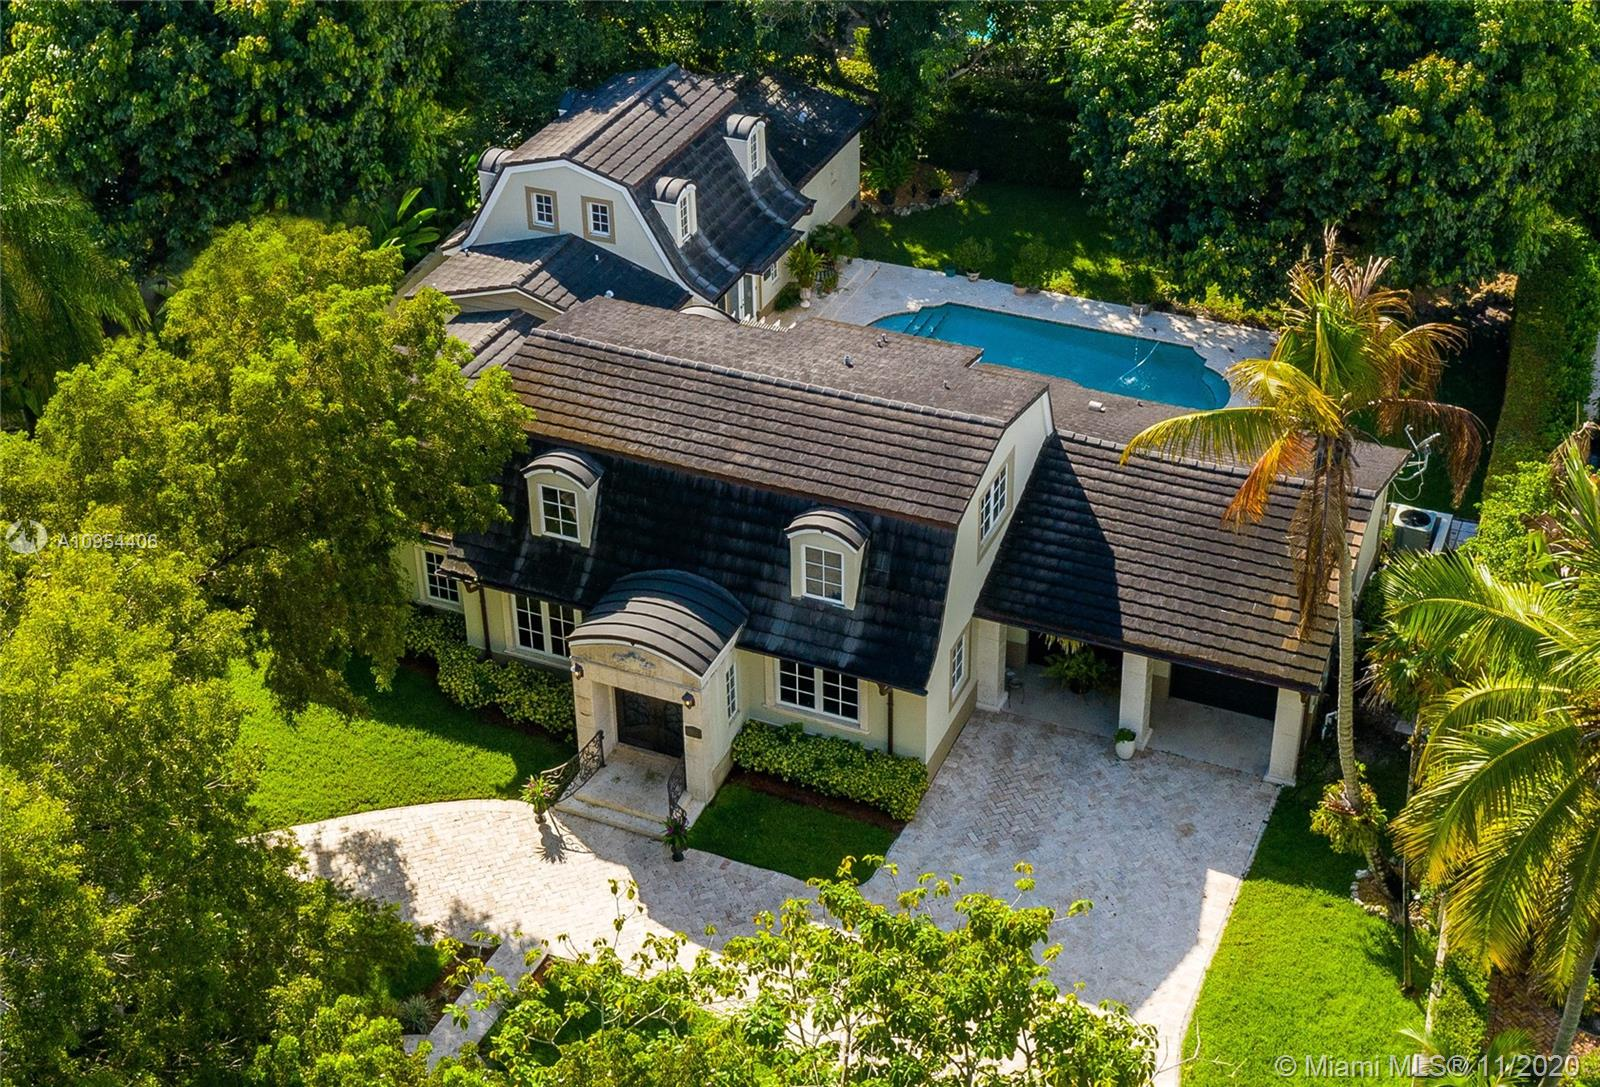 4000 + square foot French Chateau styled 2 story home at prized address on one of Coral Gables most iconic streets; Granada Boulevard. 4 bedrooms and 5 bathrooms. 1172 square foot main bedroom and bath addition in 2010. Original 1949 home was fully renovated in 2006. 100'X146' walled and gated lot with 17' X 34' pool. Impact glass doors and windows, marble floors, main bedroom and a guest bedroom on first floor. Two bedrooms, 2 baths upstairs. Roomy kitchen, remodeled in 2006 overlooks huge back yard and oversized swimming pool. Air conditioned two car garage. Elegant, charming and super spacious with a stunning 1000 + square foot main bedroom/bath suite. Some updating needed. Ideal location within walking distance to the Granada Golf Course and the Biltmore Hotel and Golf Course.